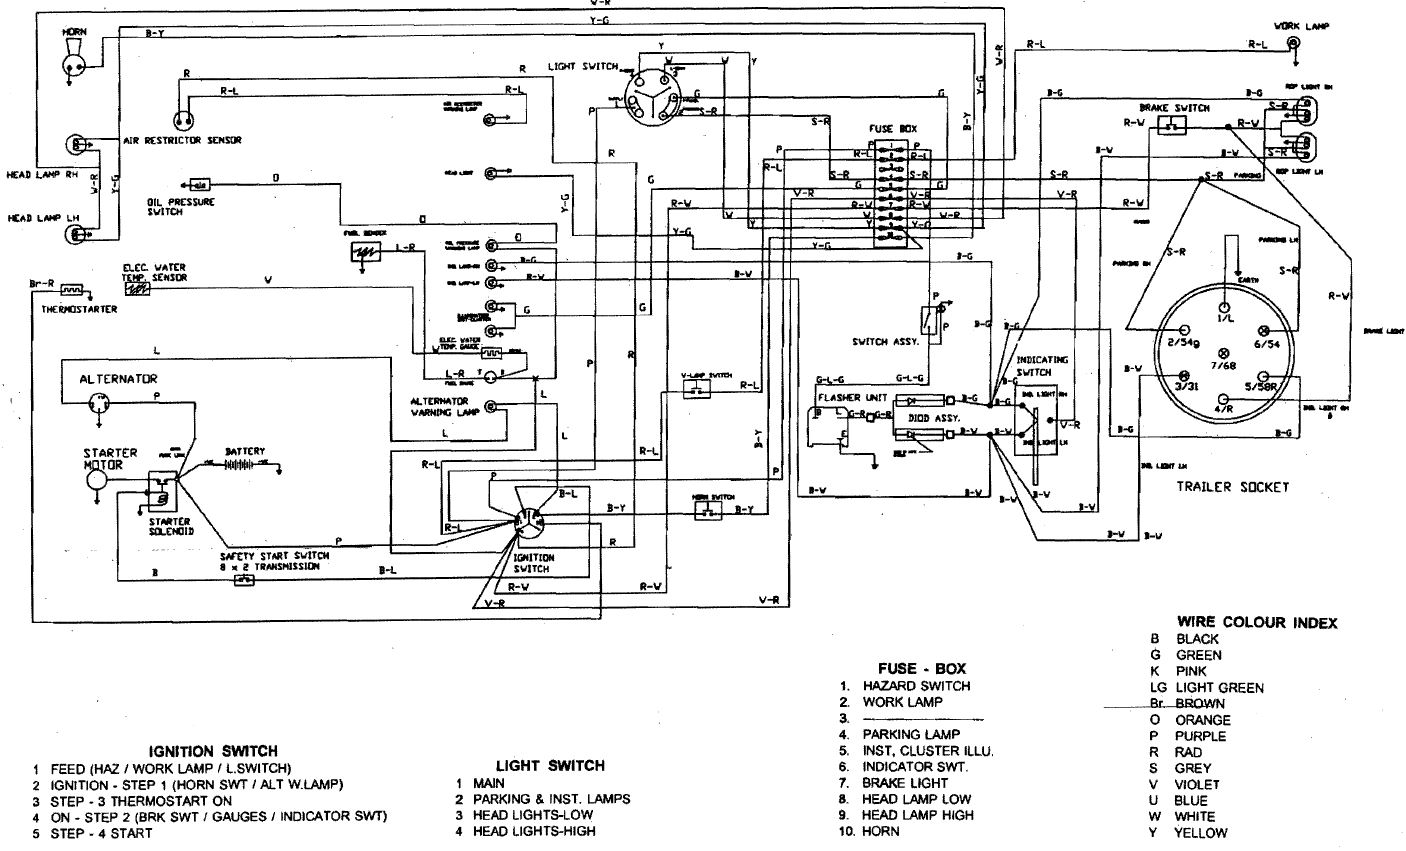 hight resolution of john deere 2010 wiring diagram for a light switch wiring diagram blog john deere 850 tractor wiring diagram john deere 4300 tractor wiring diagram